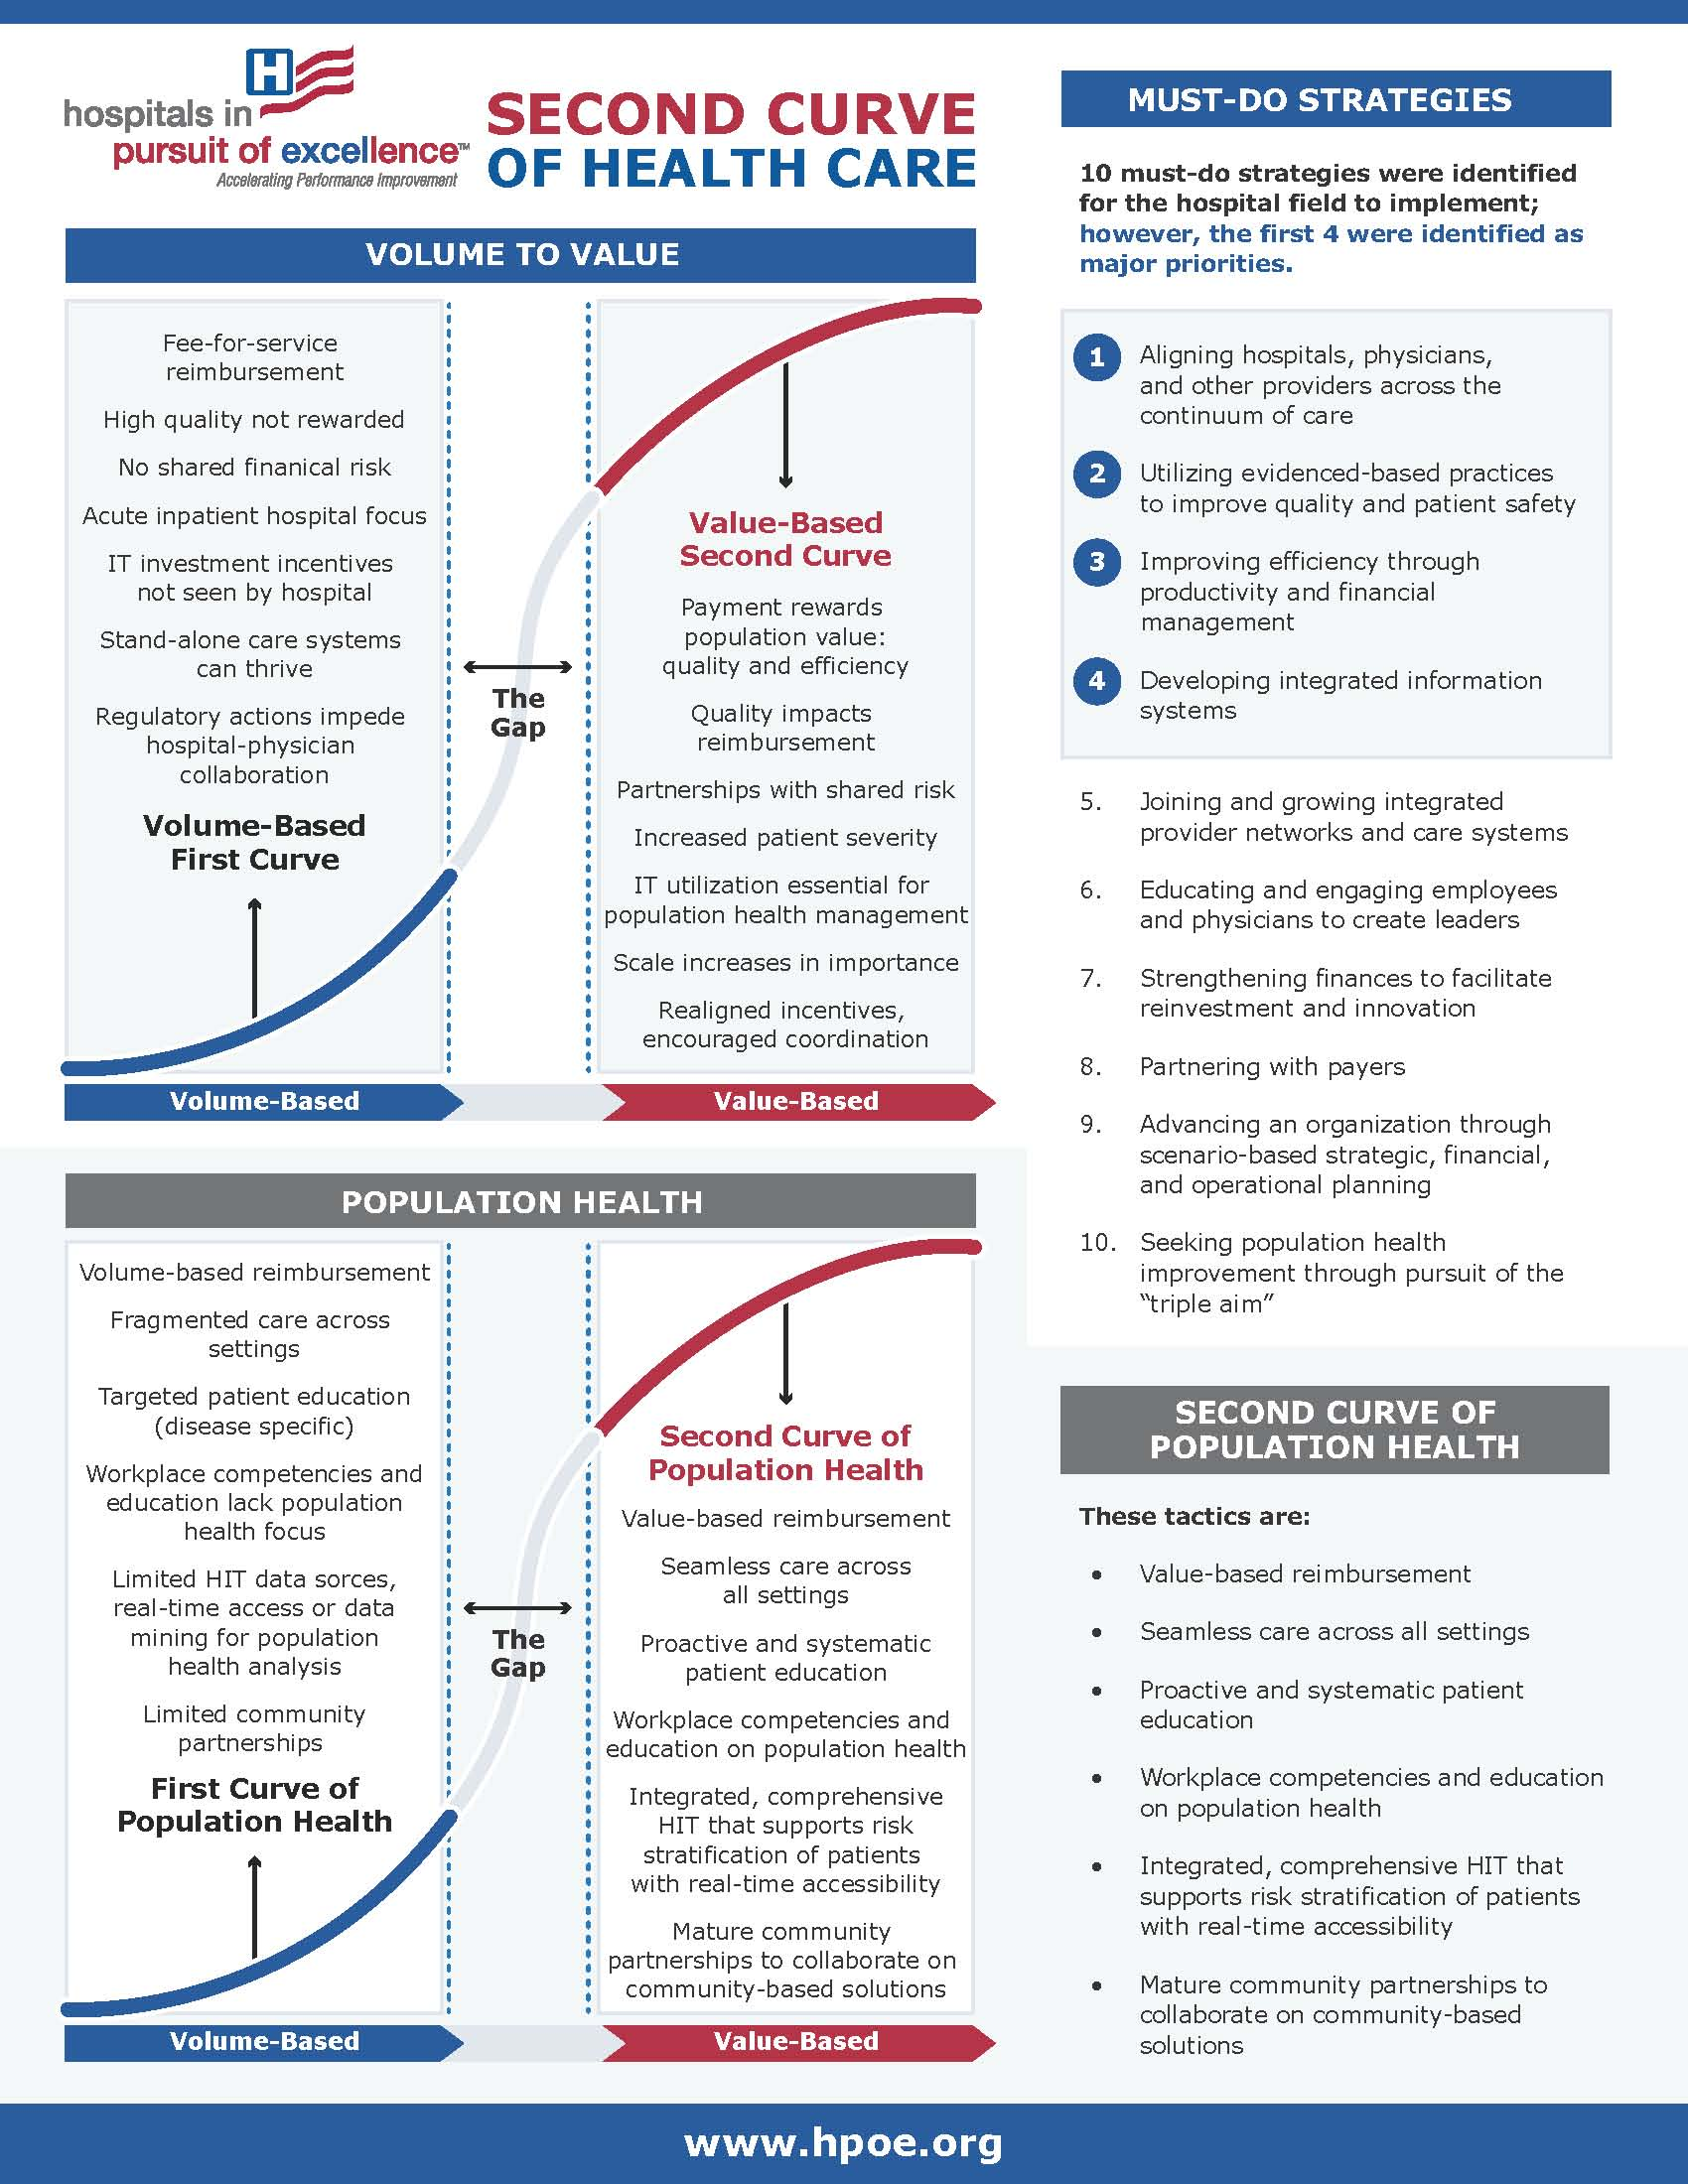 Second Curve of Population Health infographic